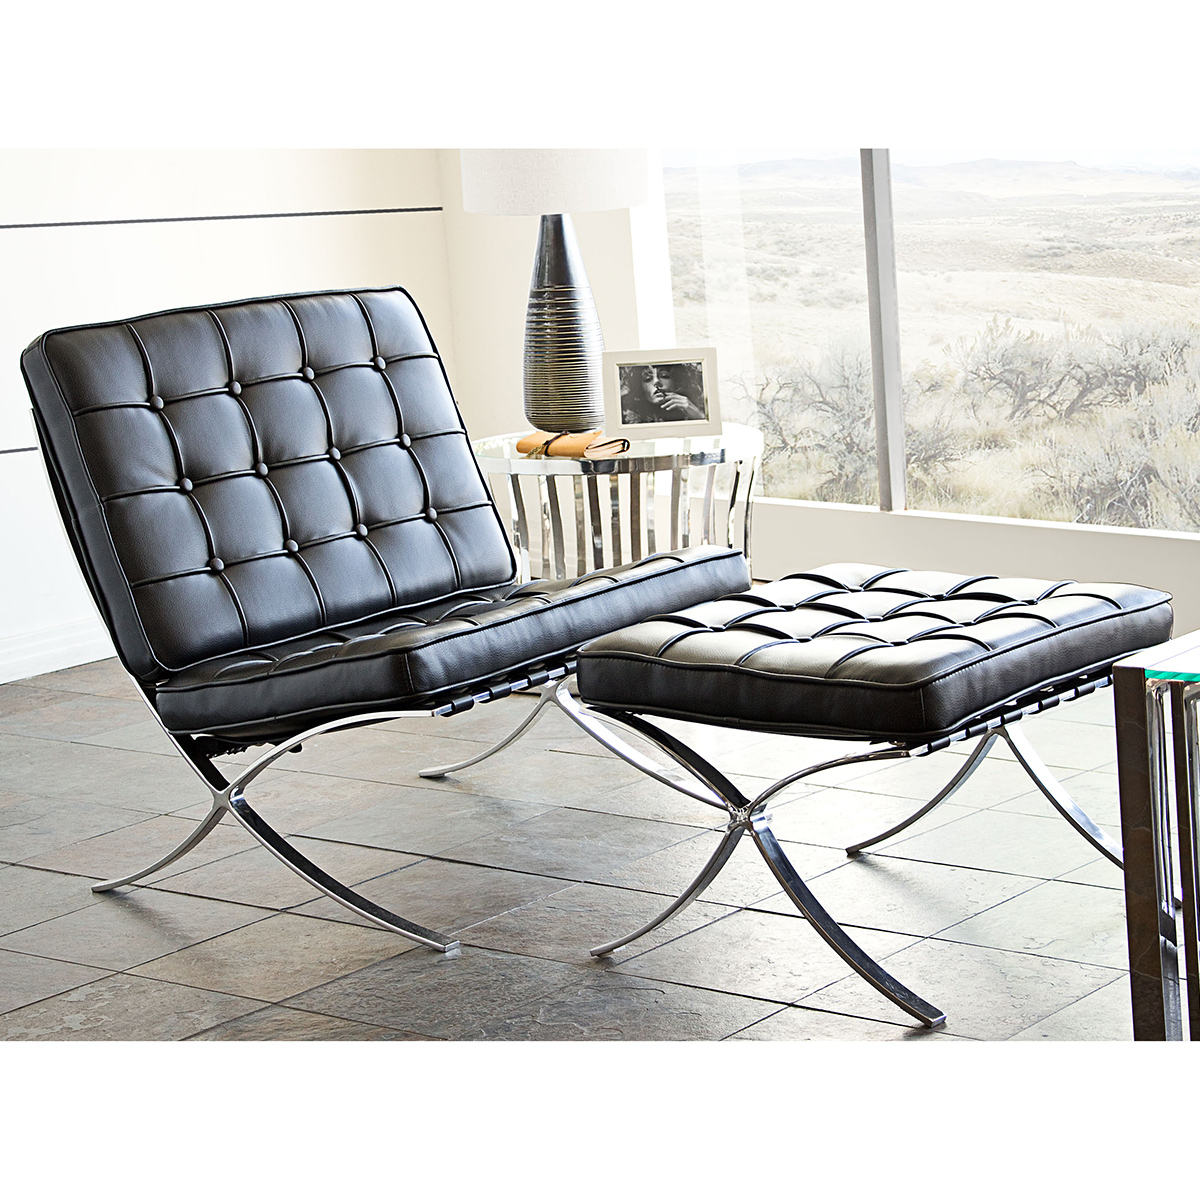 tufted chair and ottoman recliner movie theater diamond sofa cordoba2pcbl cordoba set w stainless steel frame in black leather